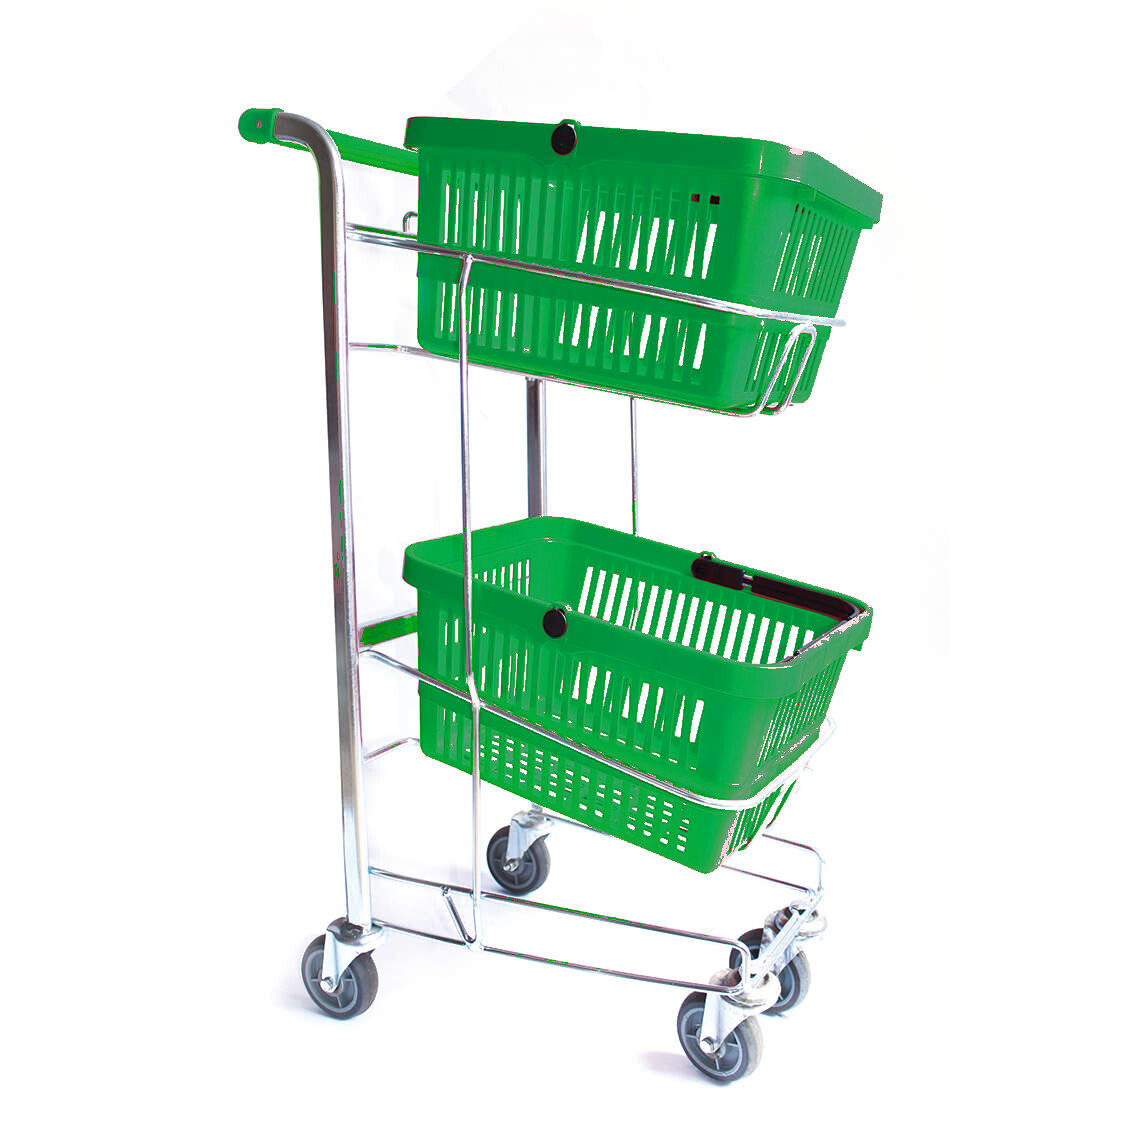 HAND BASKET TROLLEY GREEN 2 TIER